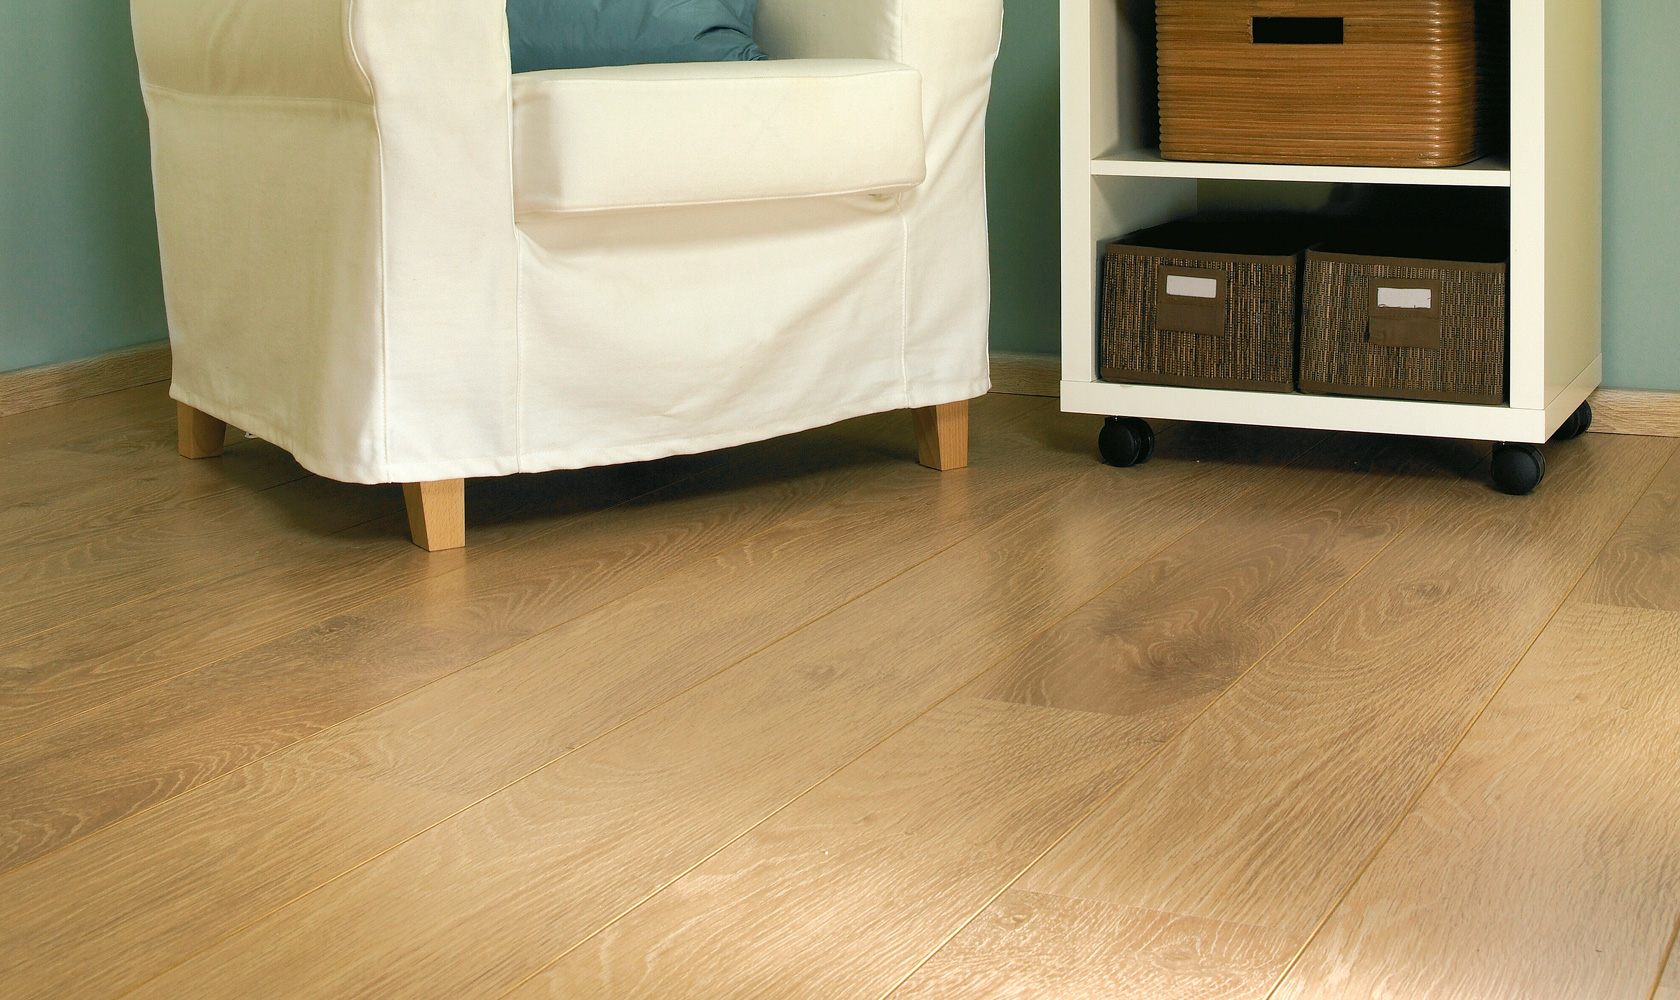 Balterio luxury laminate flooring tradition quattro lounge for Balterio legacy oak laminate flooring